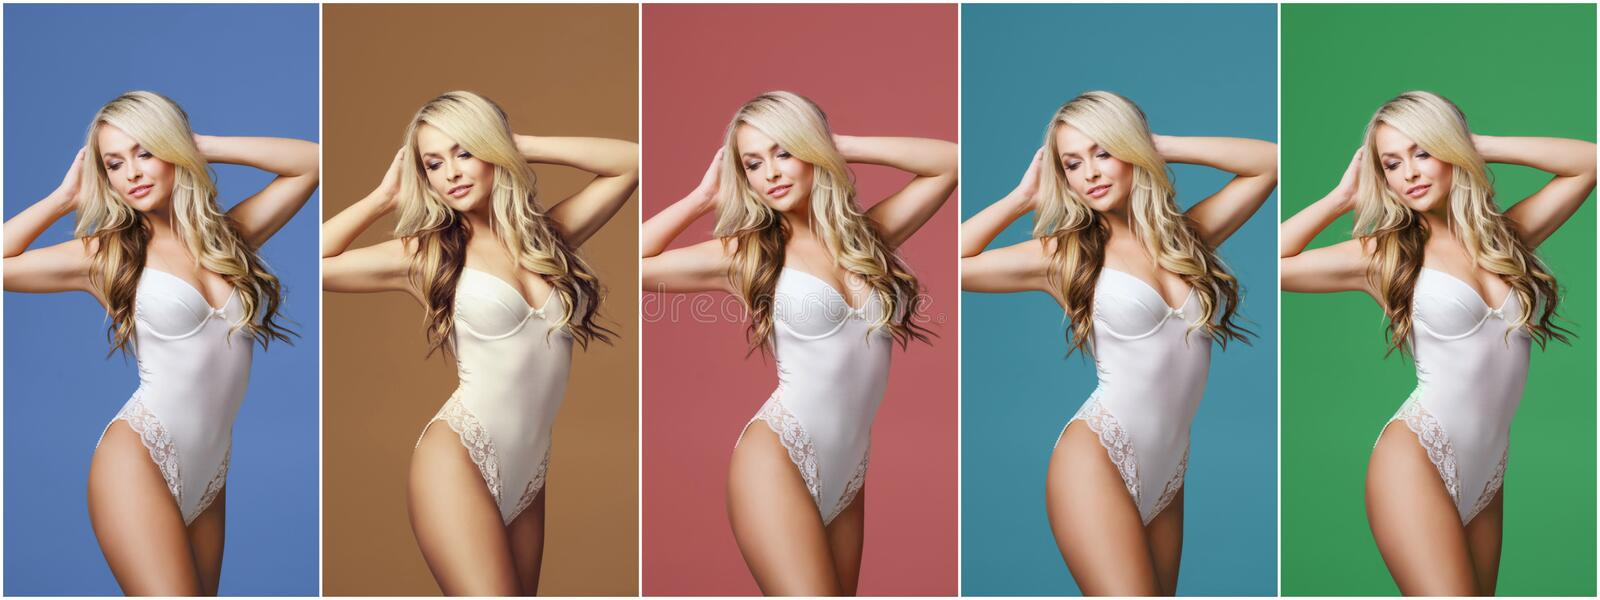 Collage of a young, sporty and fit woman in white underwear over different colorful background. Fashion and beauty stock photos